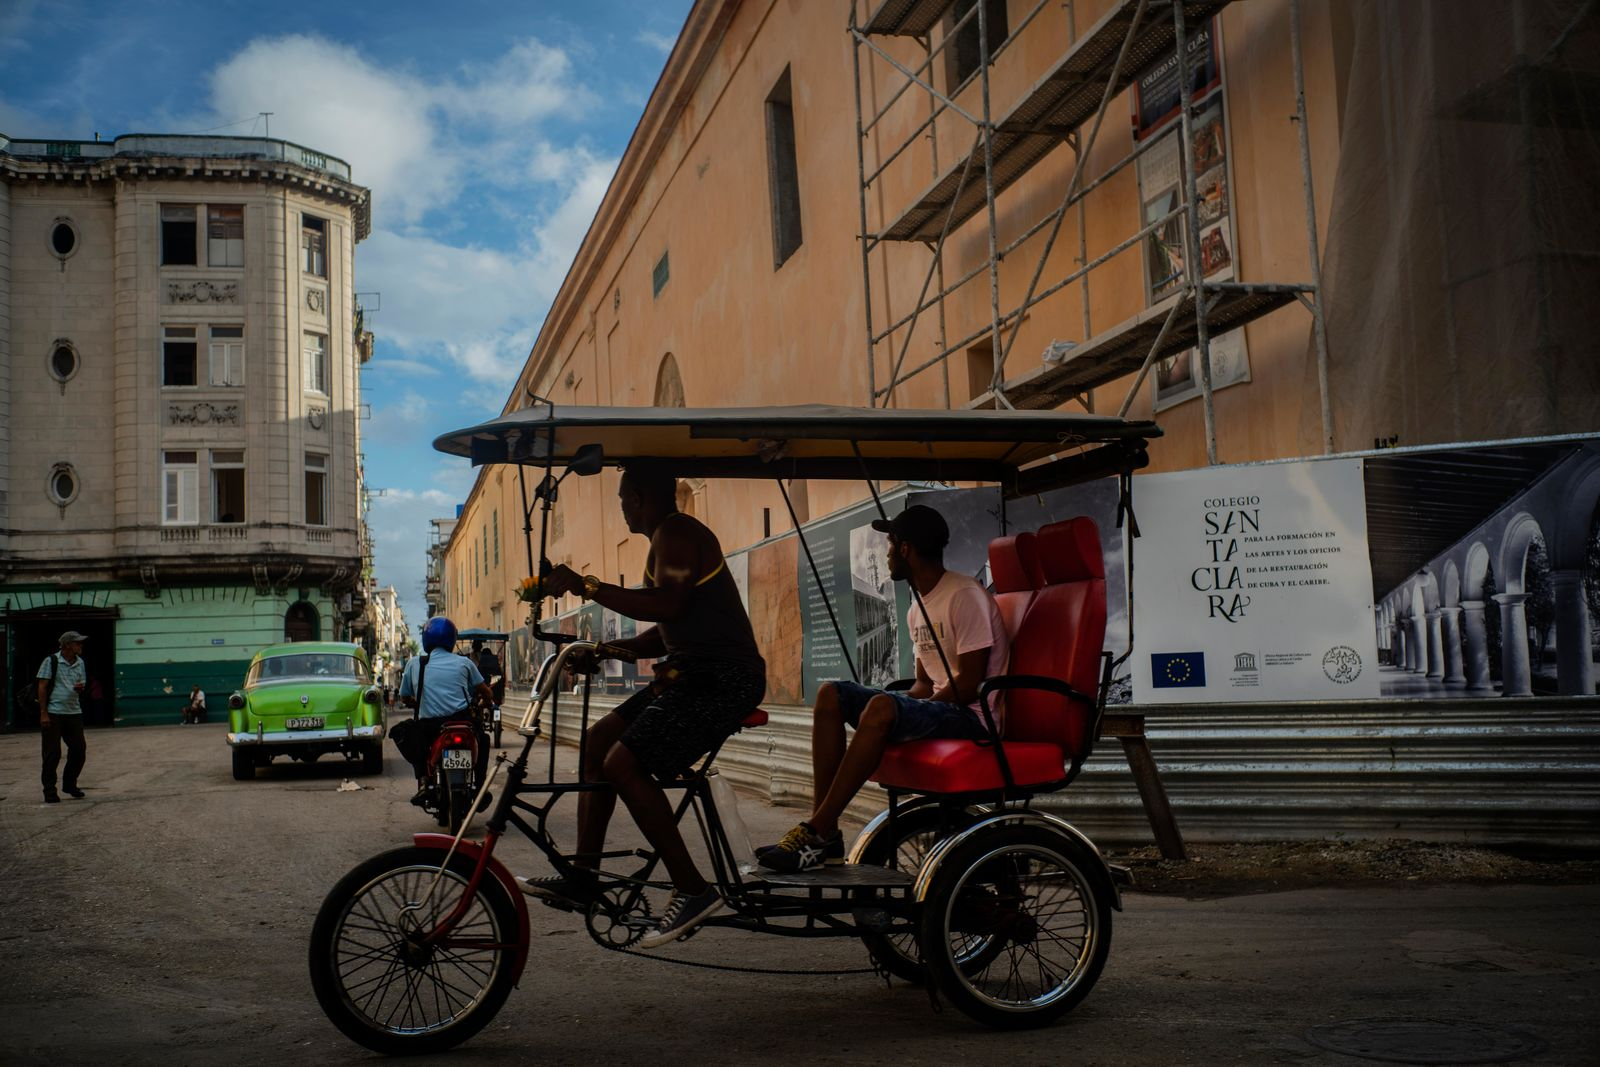 In this Nov. 9, 2019 photo, a bicycle taxi driver navigates his client past buildings under restoration in Havana, Cuba. The city will celebrate its 500th anniversary on Nov. 16. (AP Photo/Ramon Espinosa)